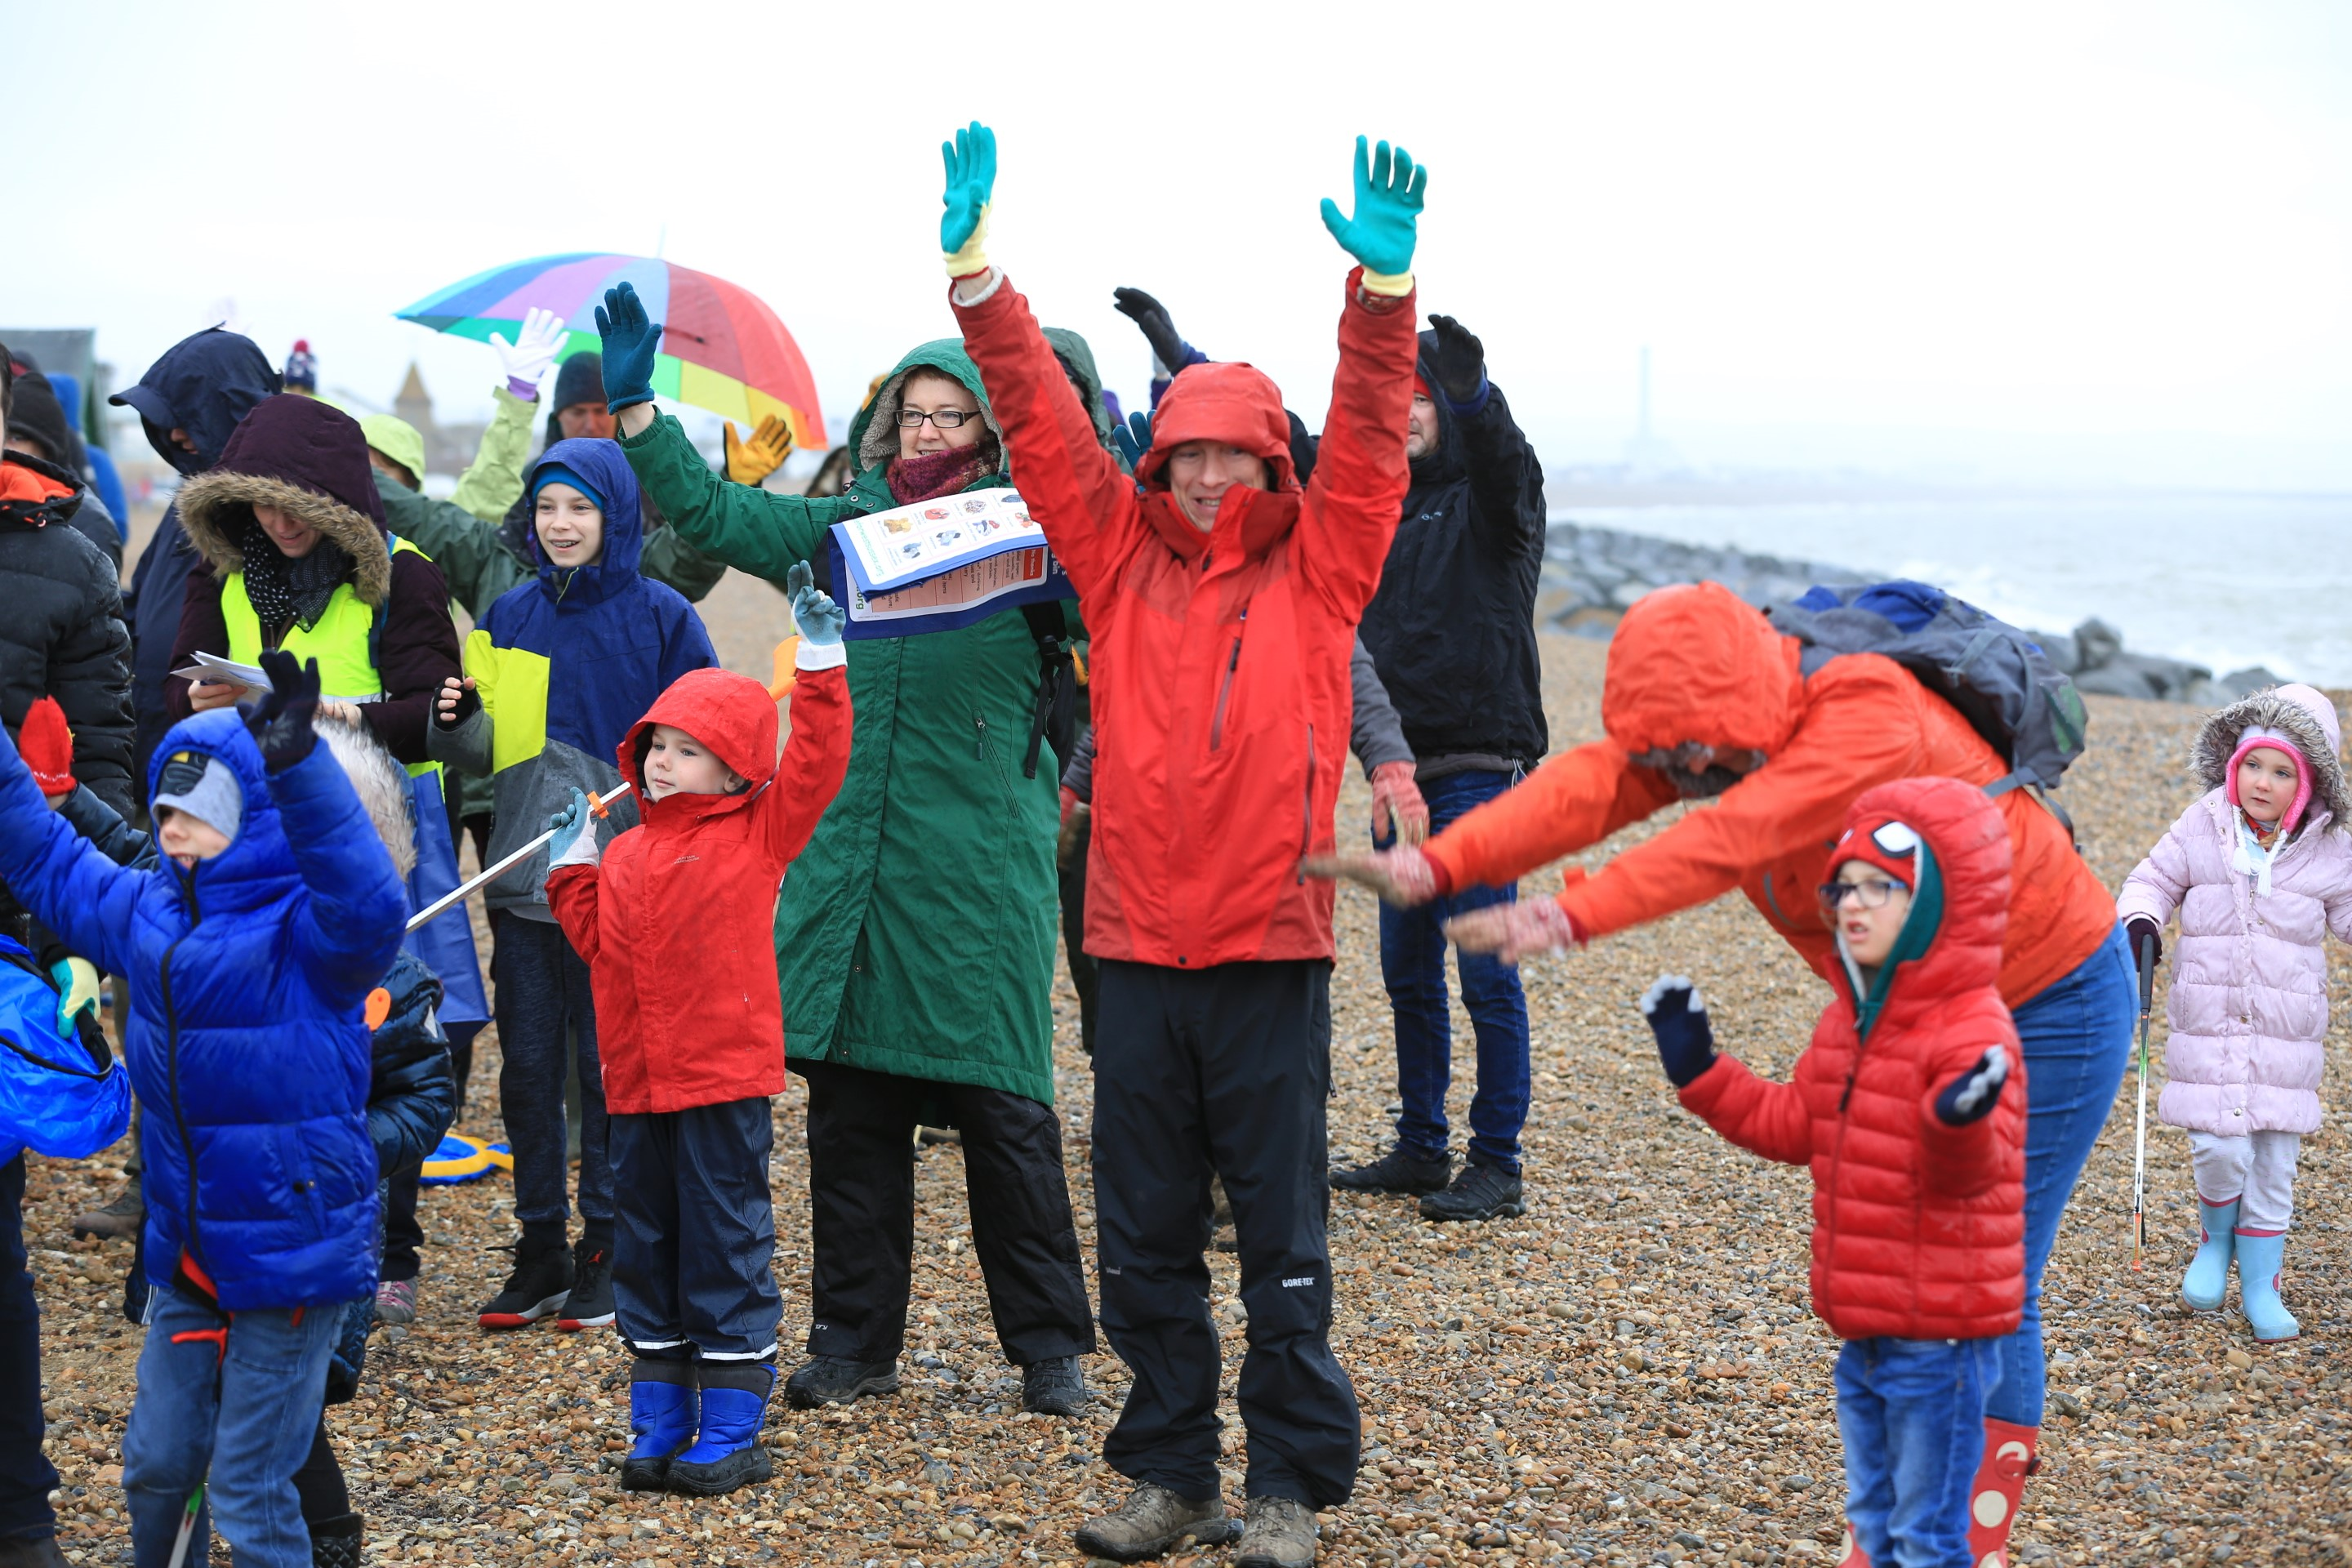 The event kicked off with a beach clean warm-up to get 650 people feeling  energised before they scoured the beach.